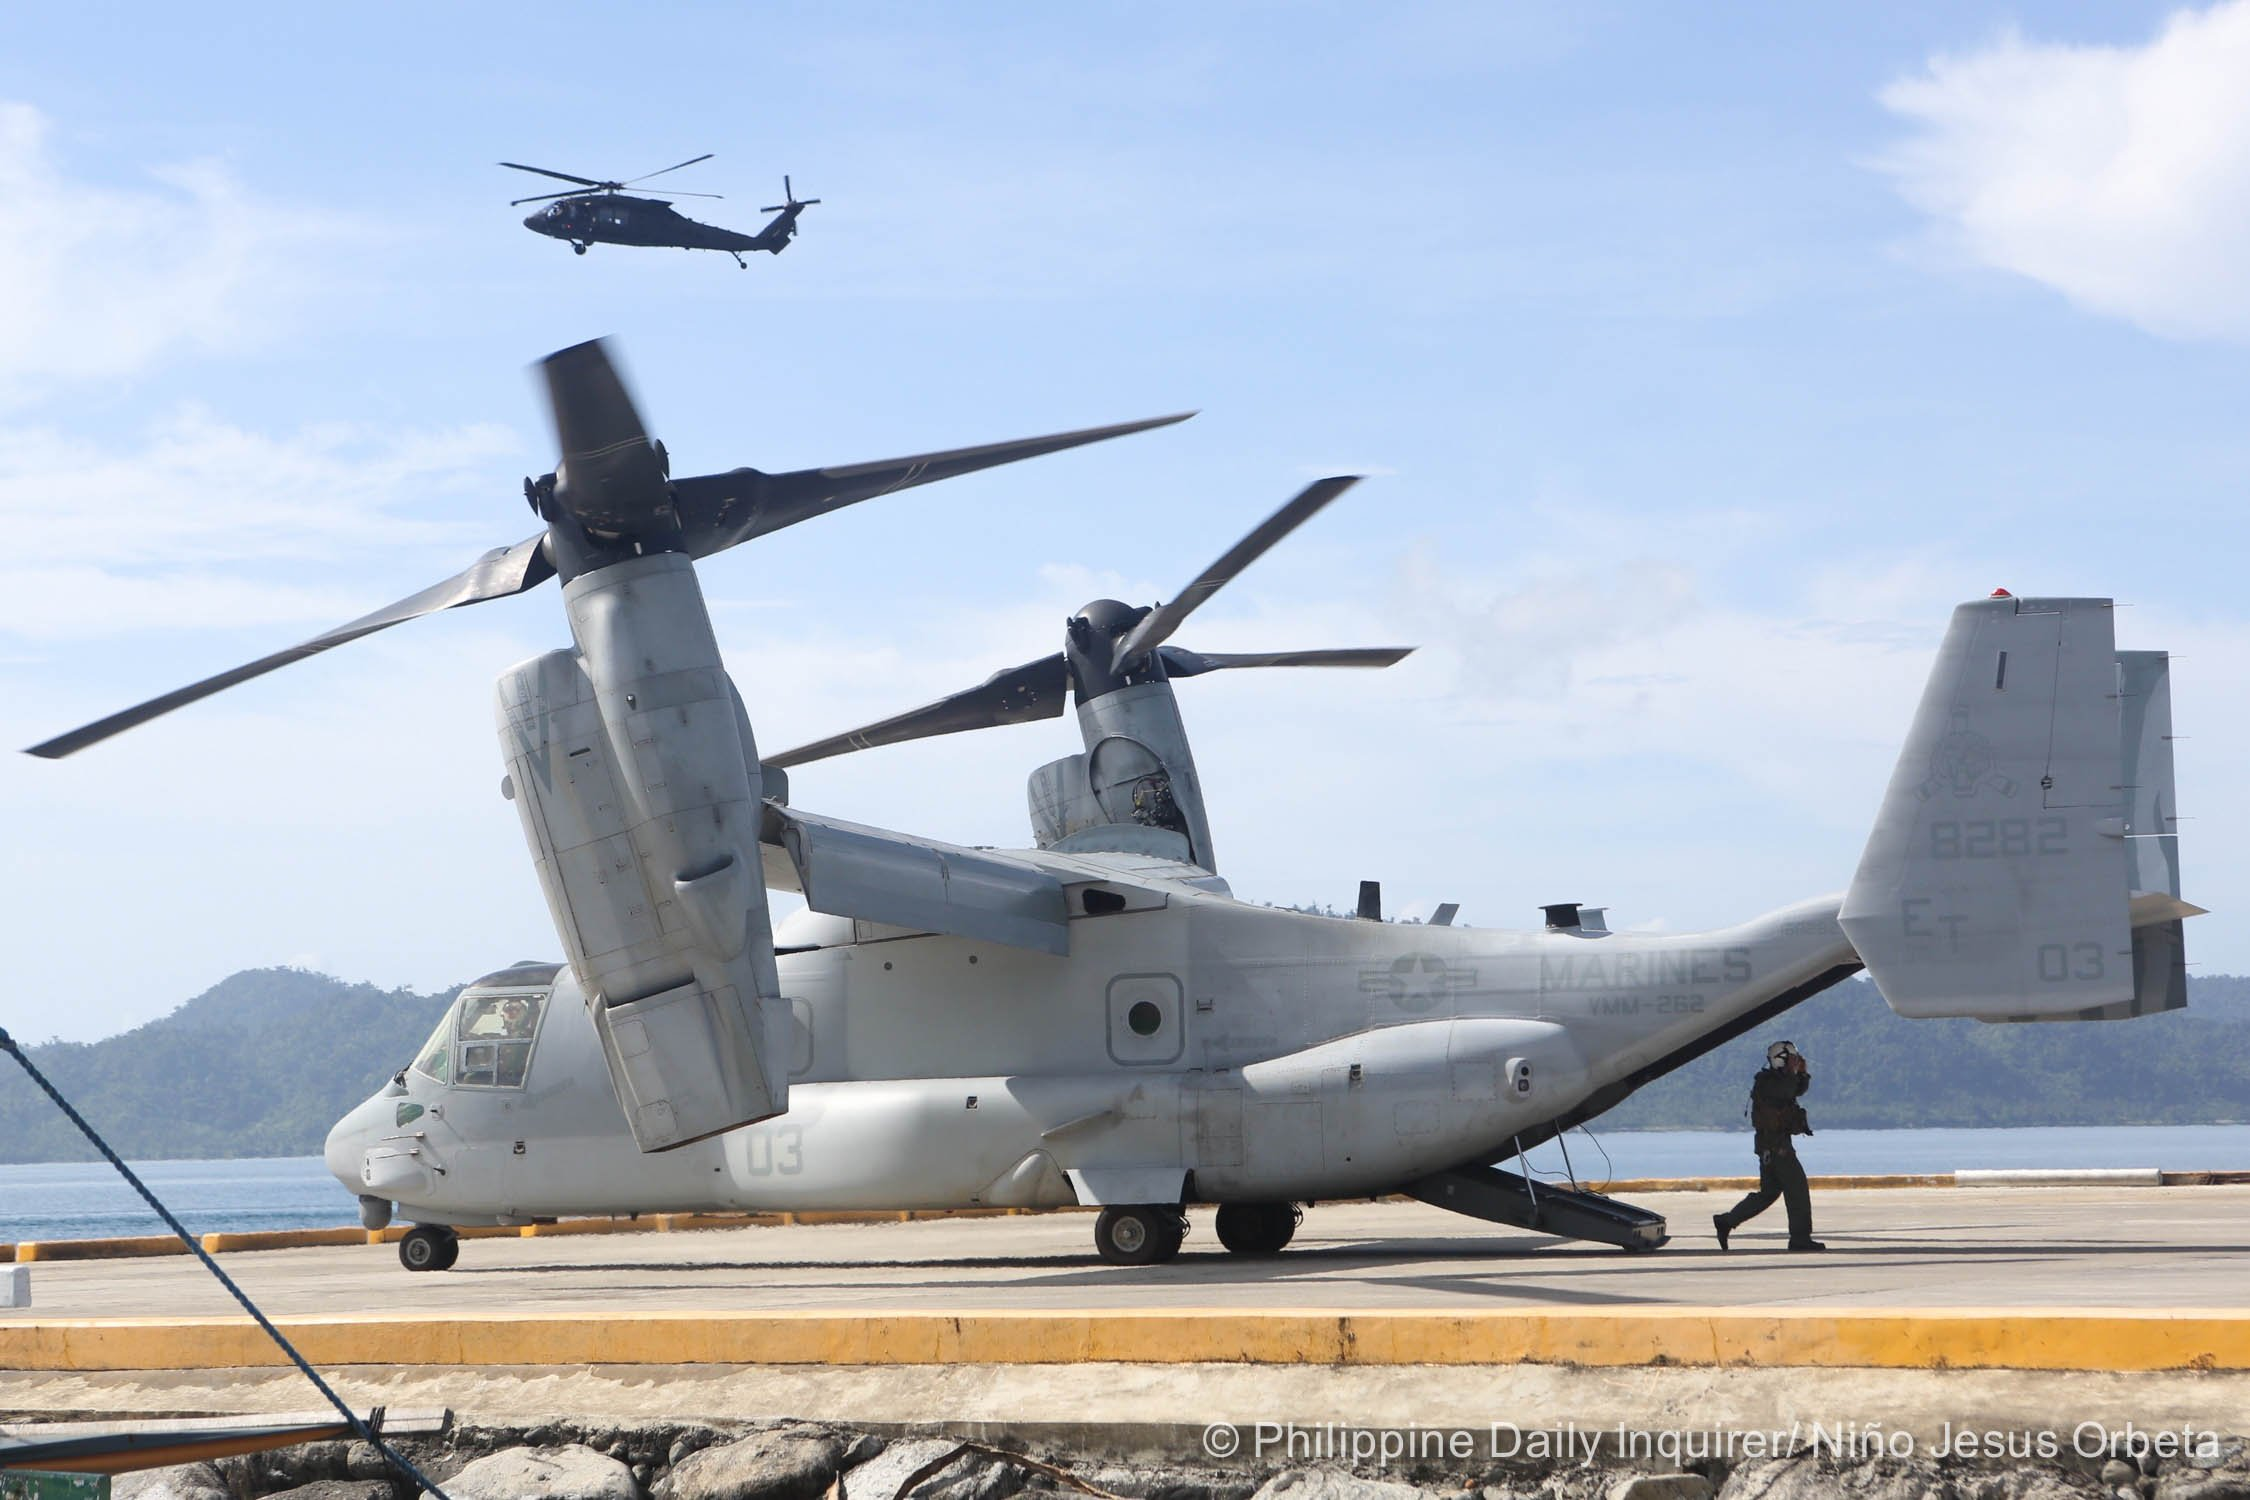 <span>A V-22 Osprey helicopter carrying American troops land on a port in Casiguran, Aurora province, prior to a simulated typhoon relief operations with their Filipino counterparts under the annual Balikatan exercises, dubbed Civil MIlitary Activities from  the Sea, May 15, 2017.</span>